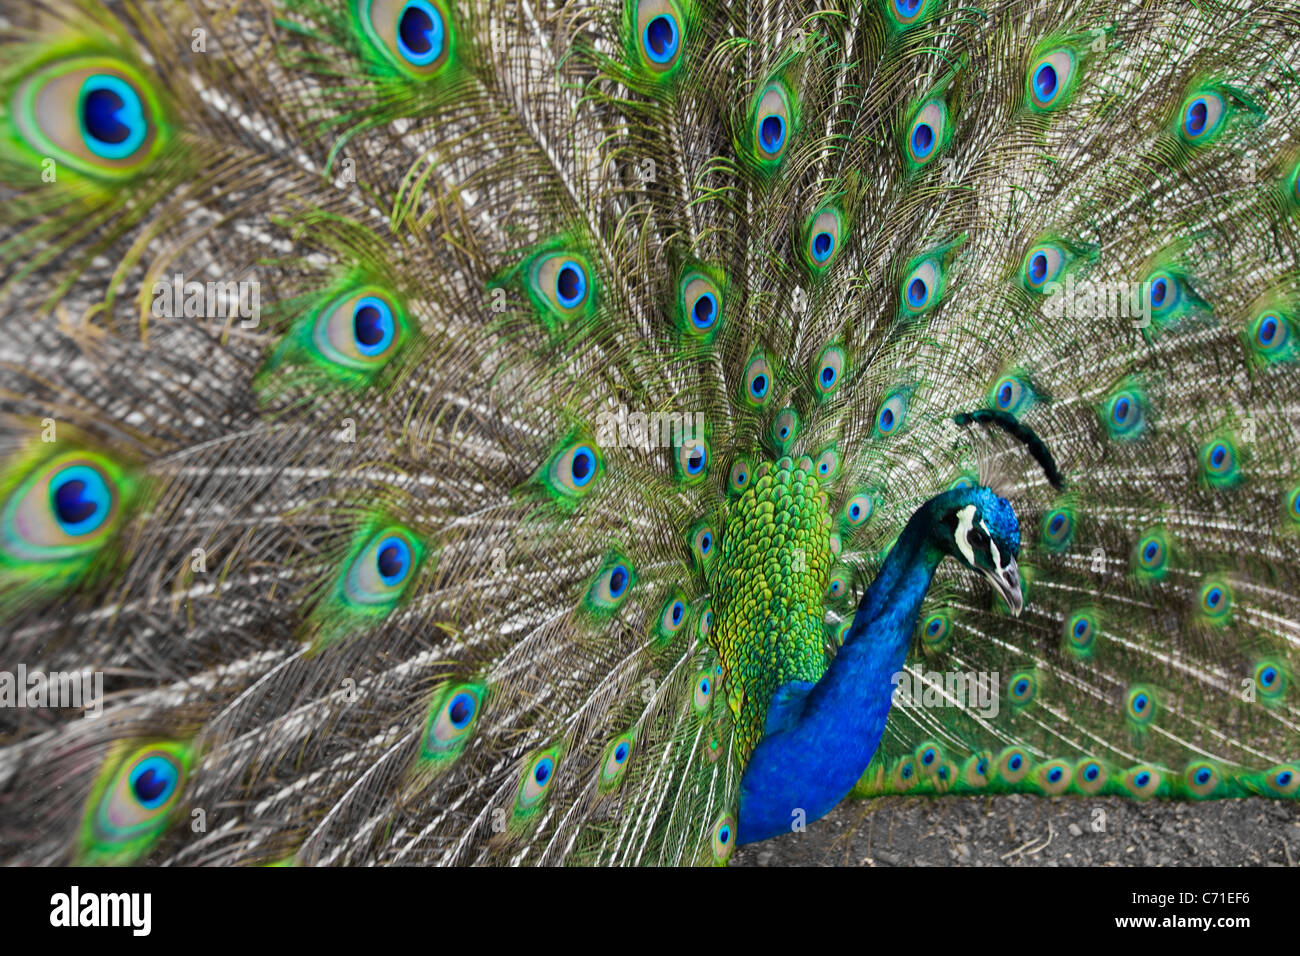 A peacock - Stock Image